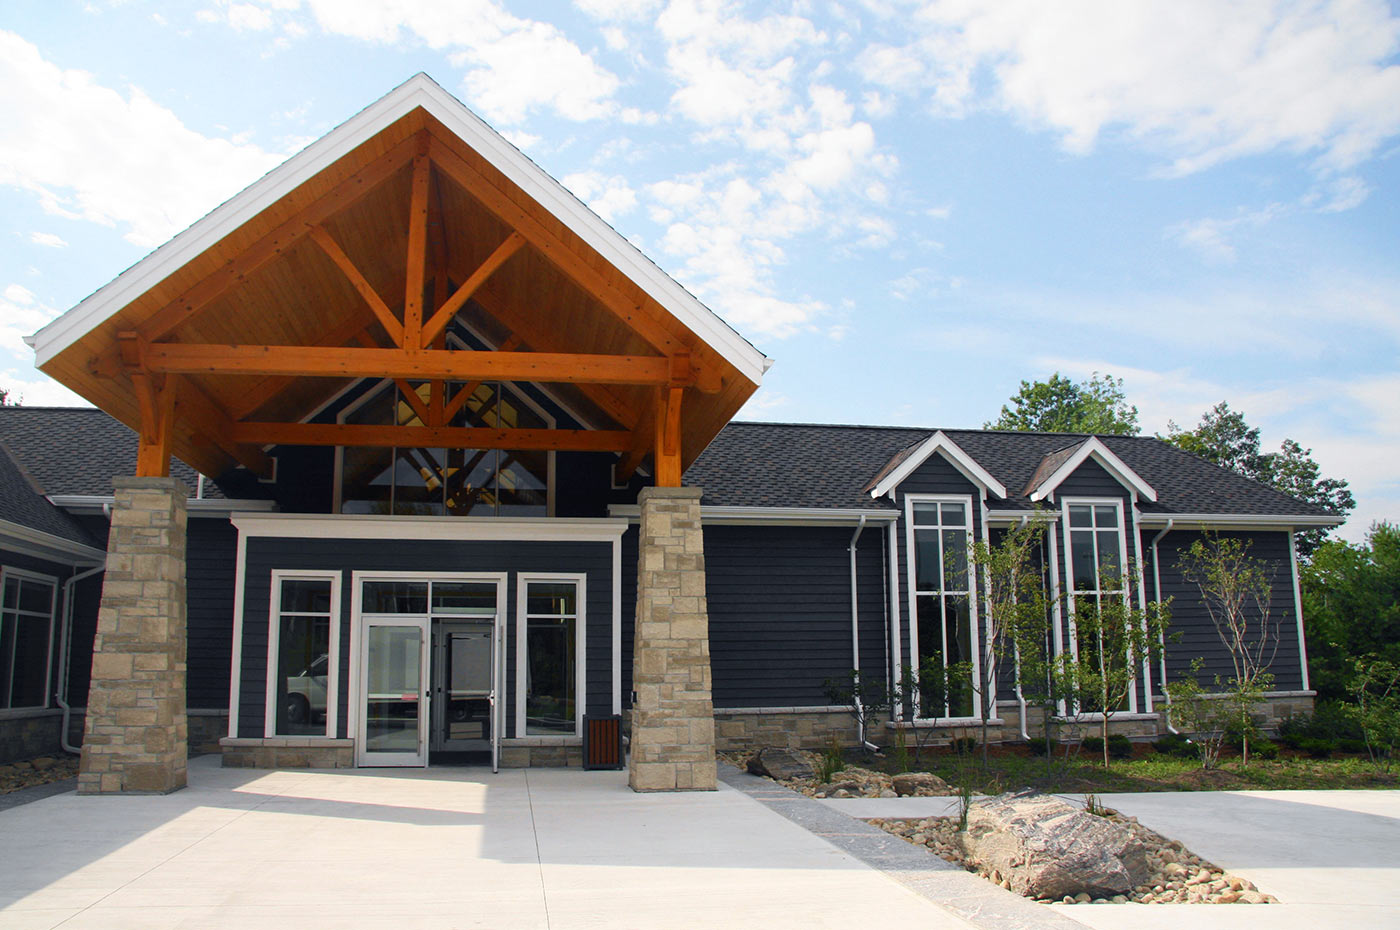 Muskoka Education Centre